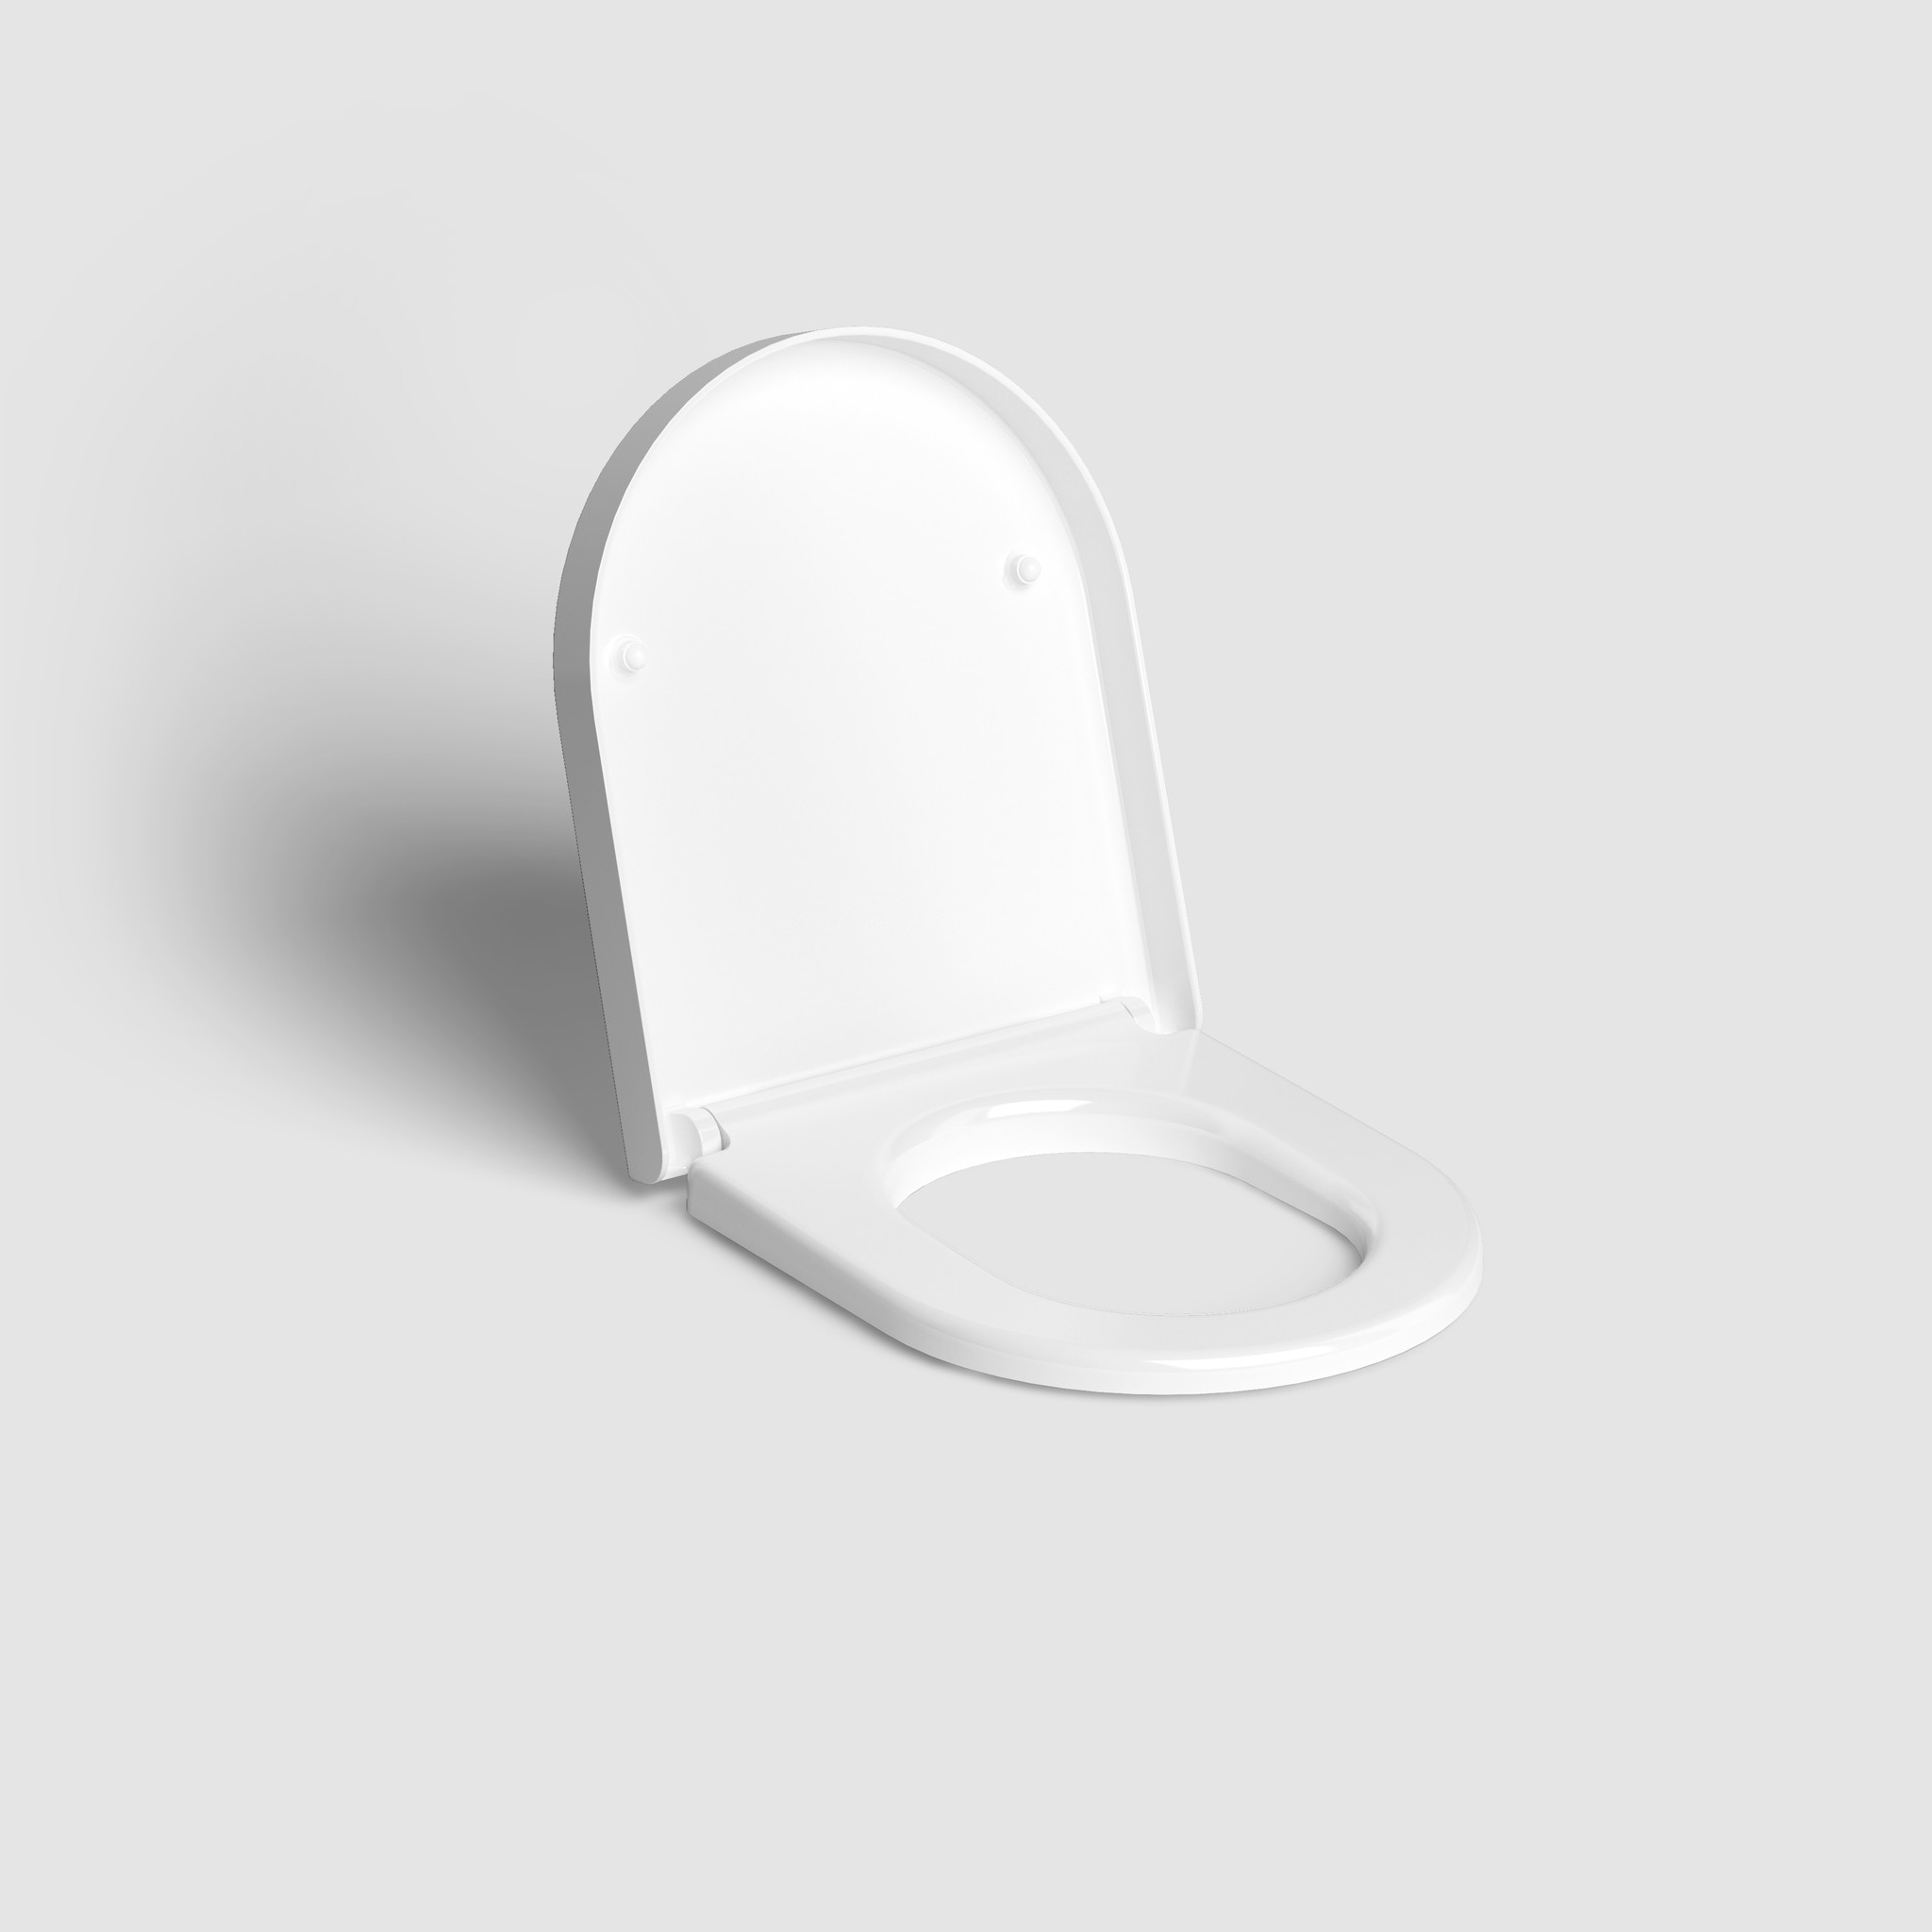 Hammock Seat with cover for Hammock toilet